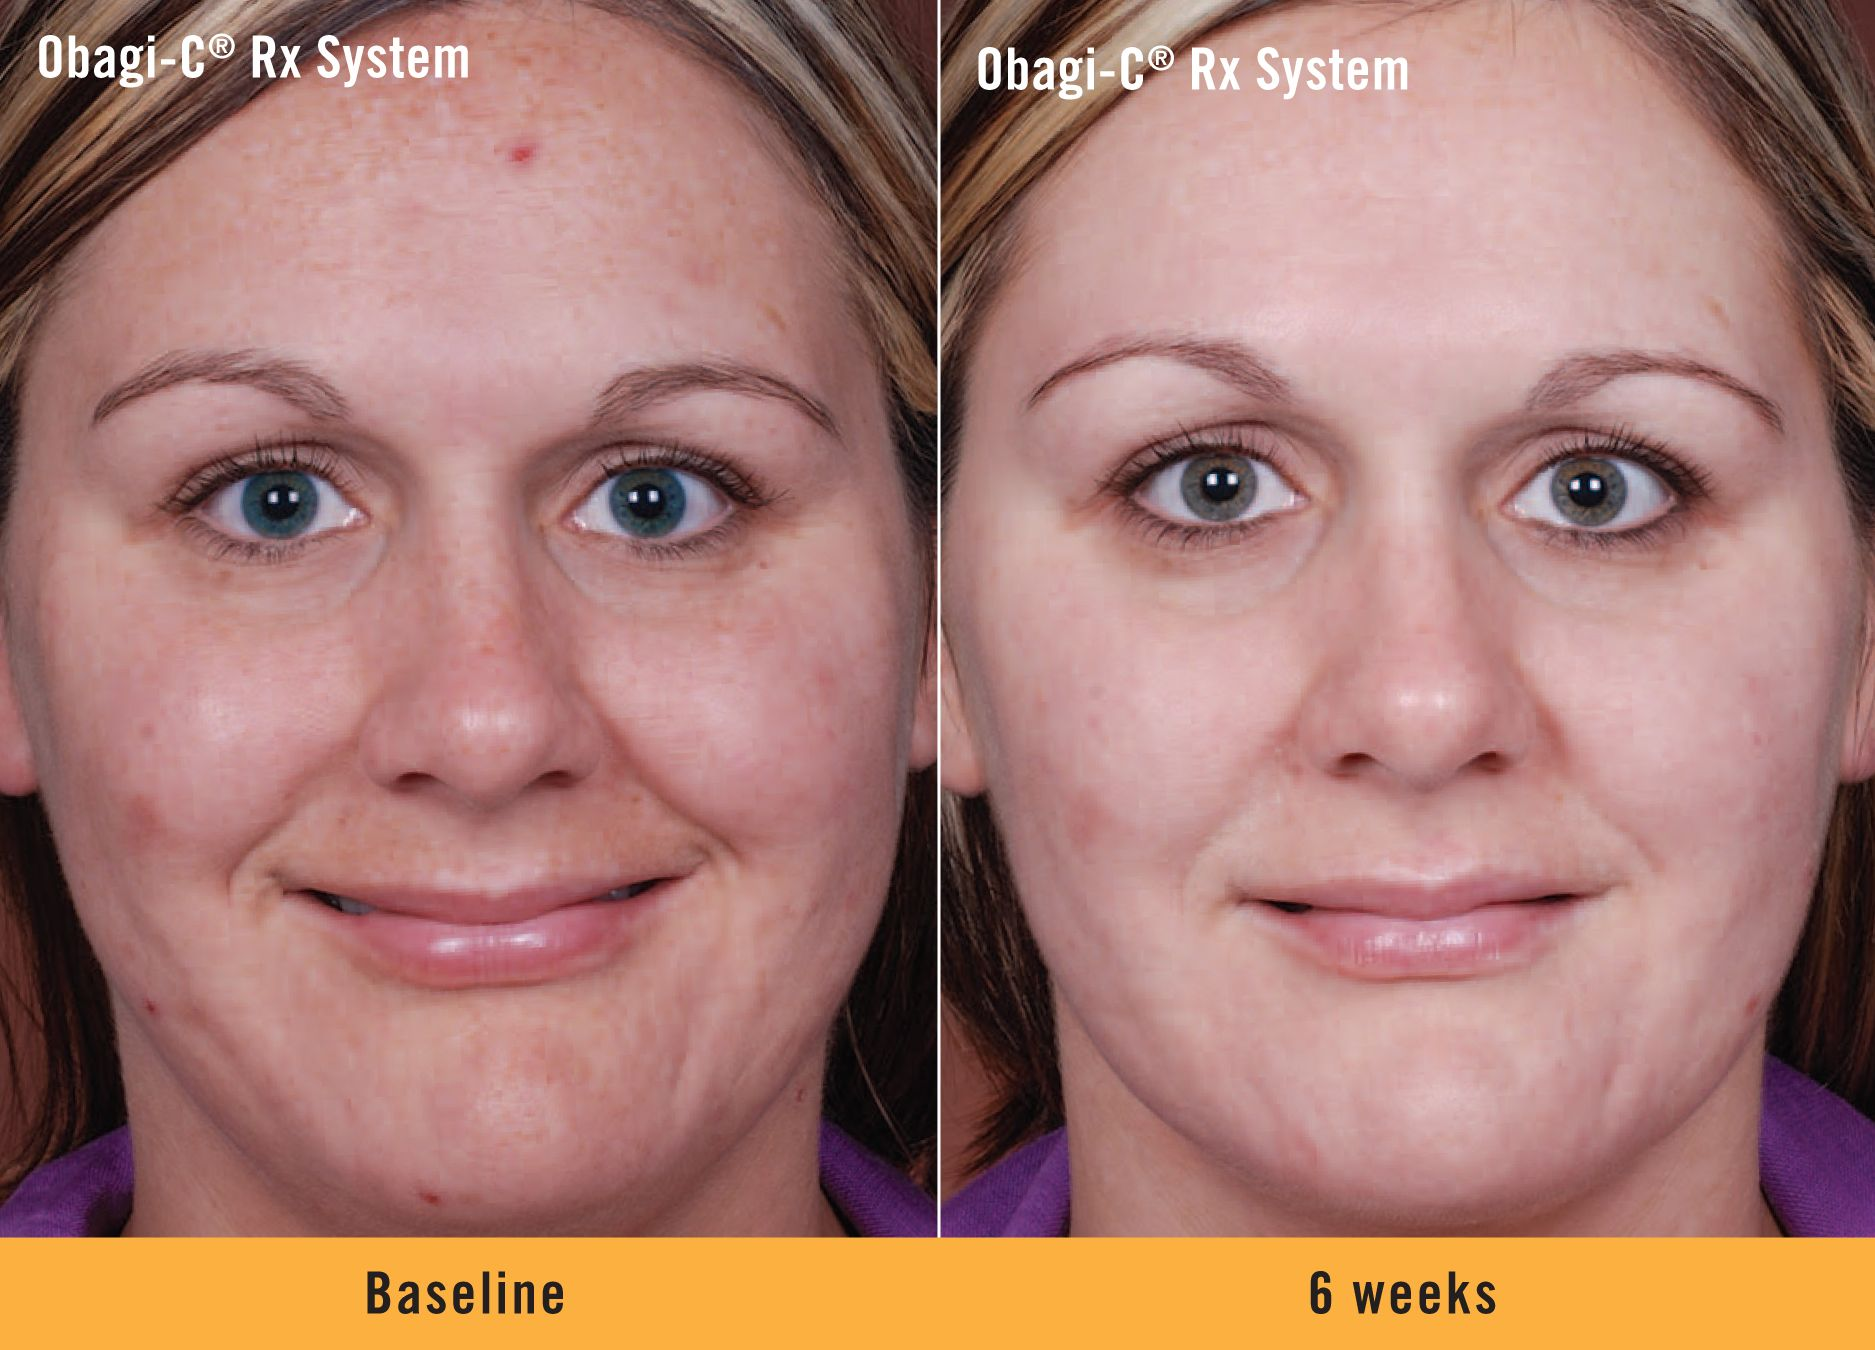 See How The Obagi C Rx System Improved The Appearance Of